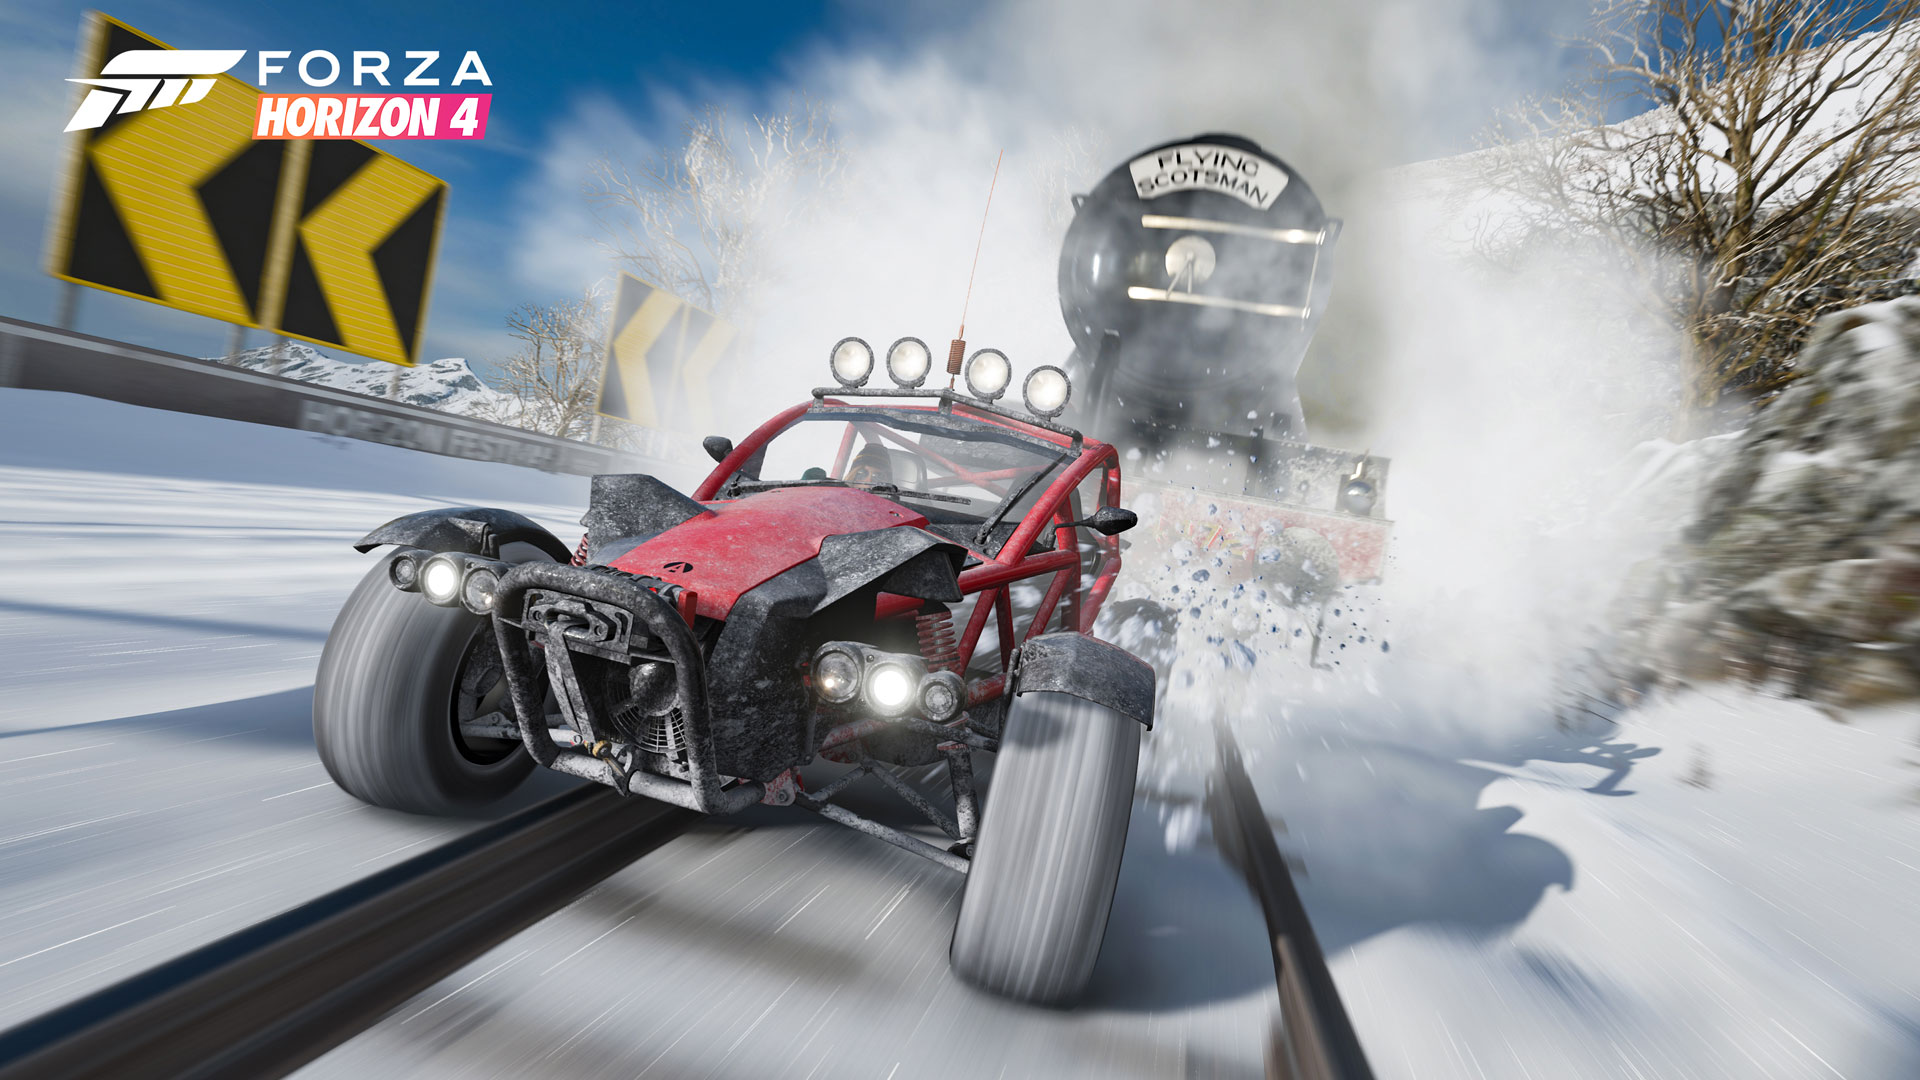 The Ultimate Forza Horizon 4 Guide: How to Make Money Fast